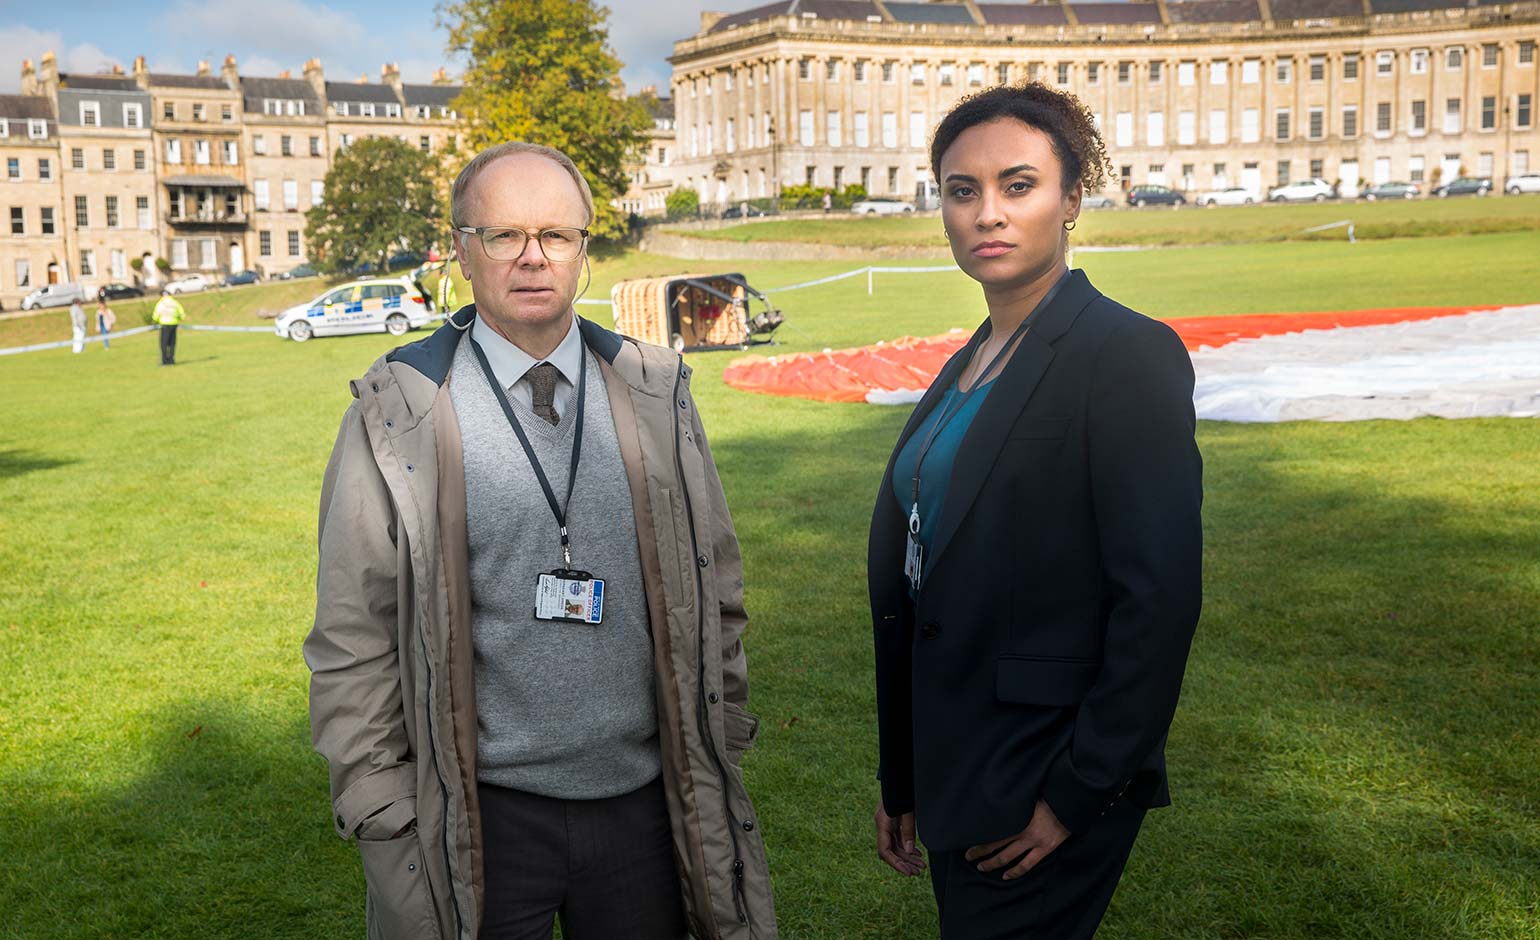 Bath-based drama McDonald & Dodds returning to screens this weekend